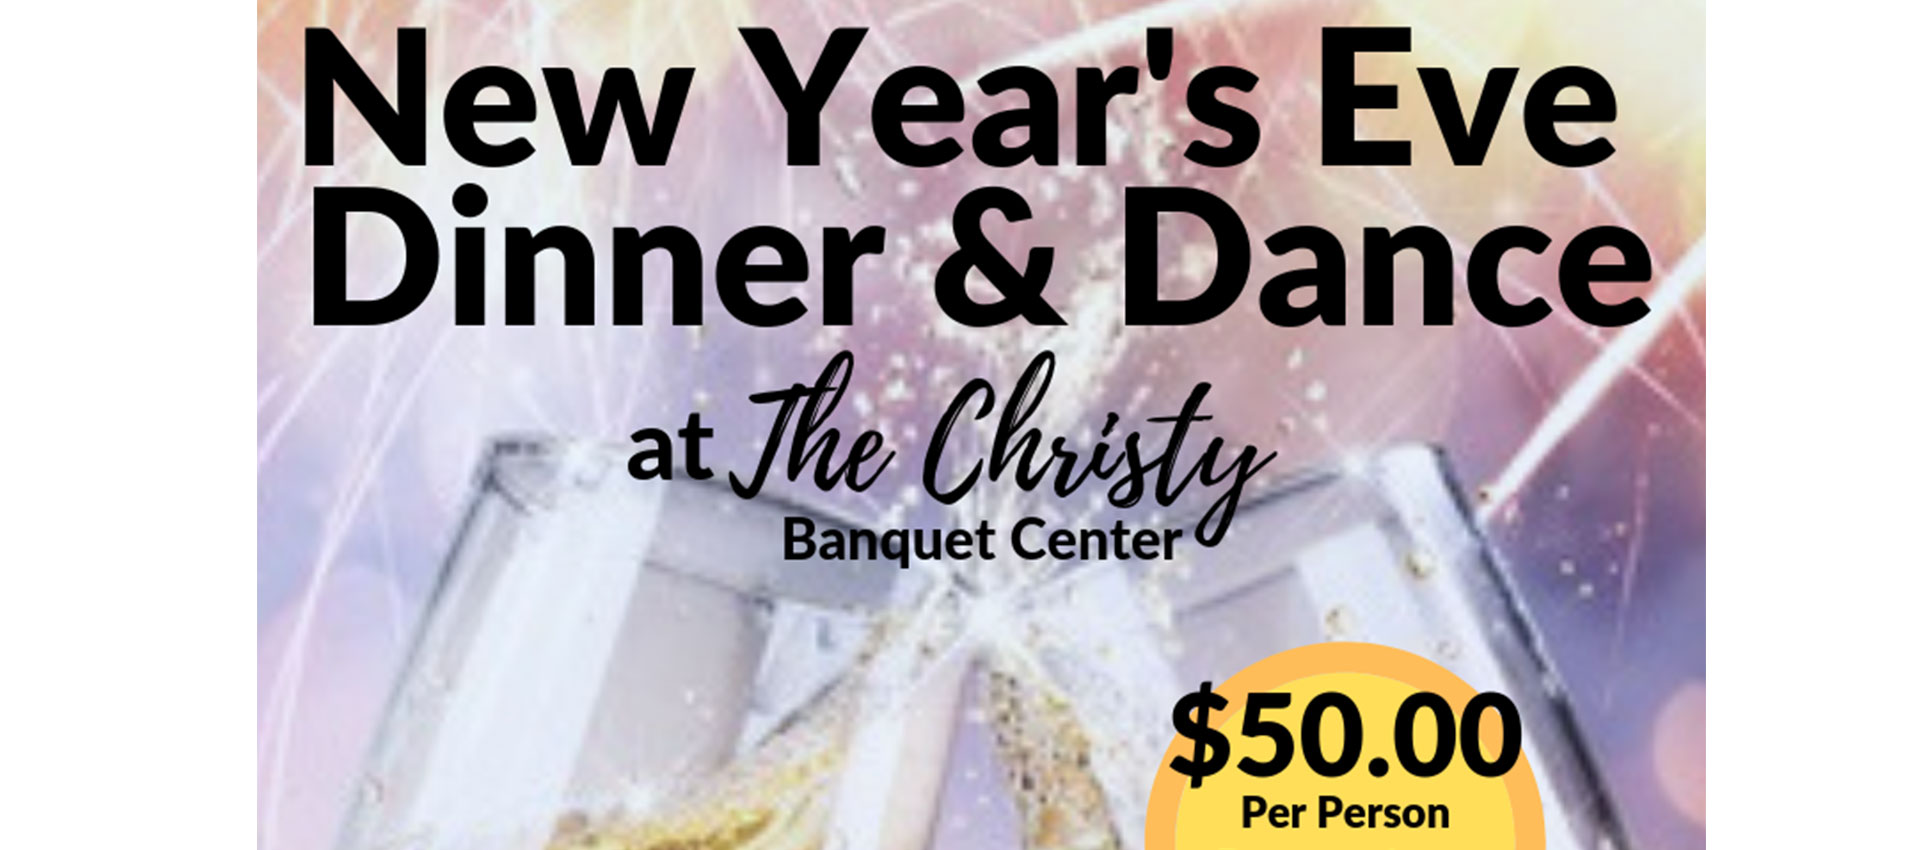 The Christy, New Years Eve Dinner & Dance flyer